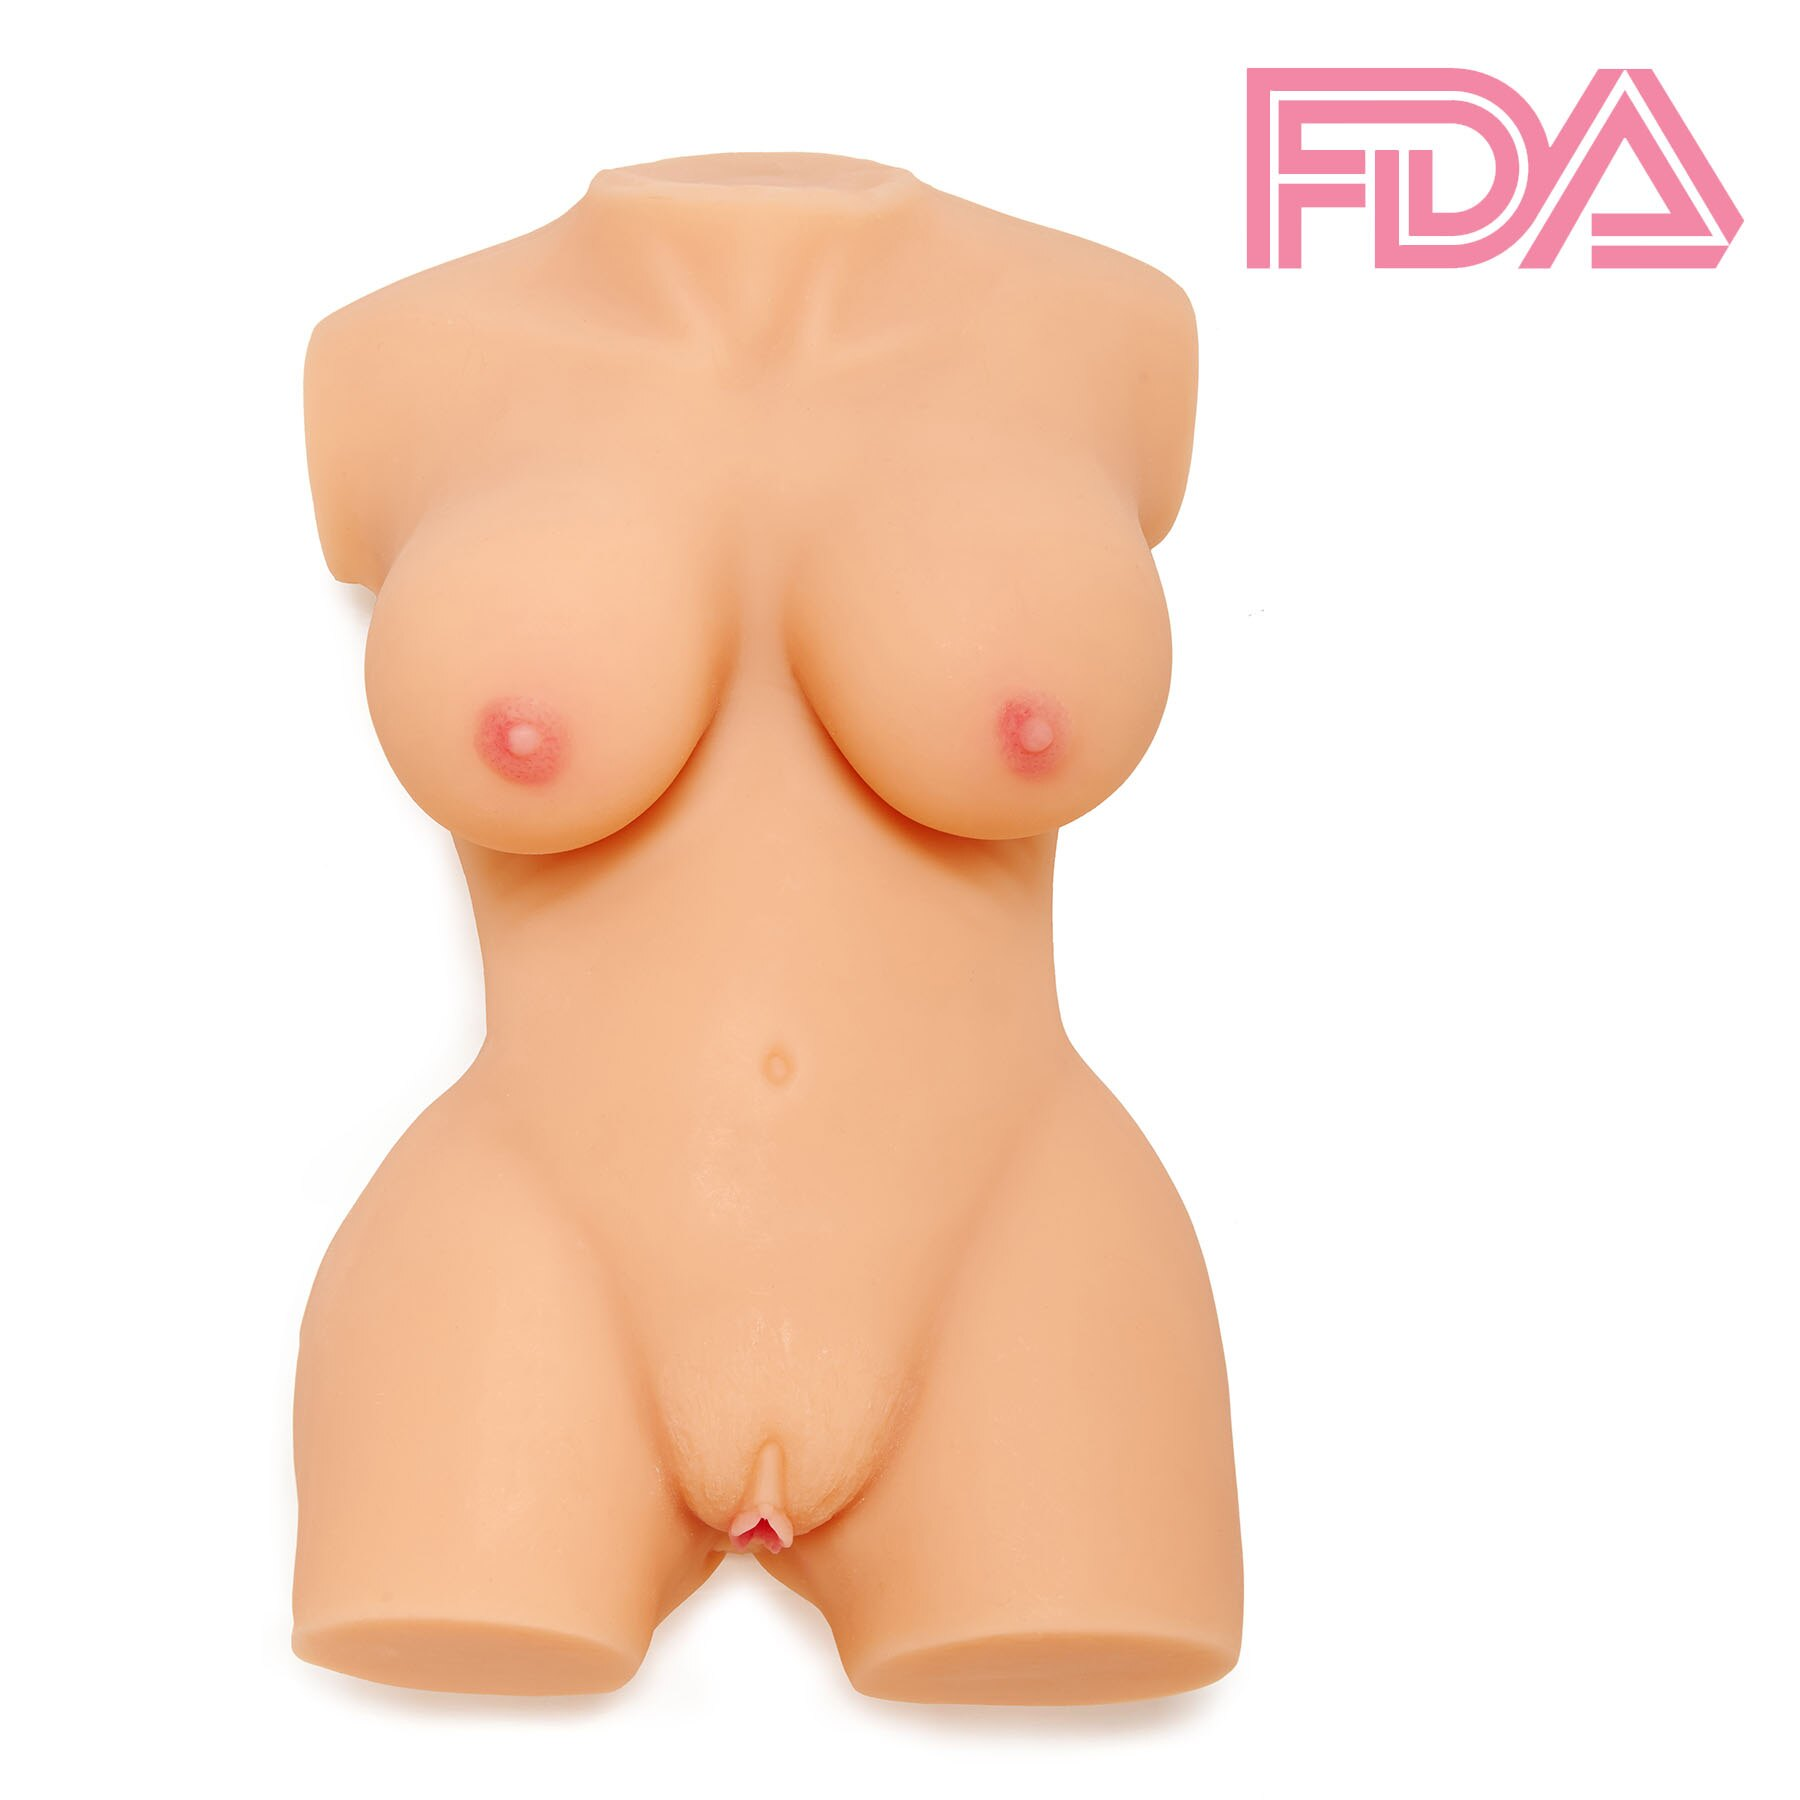 3 D Sex Com 3d sex love doll silicone male masturbator torso realistic breast pussy ass  adult toy flesh color(16.3 lbs)